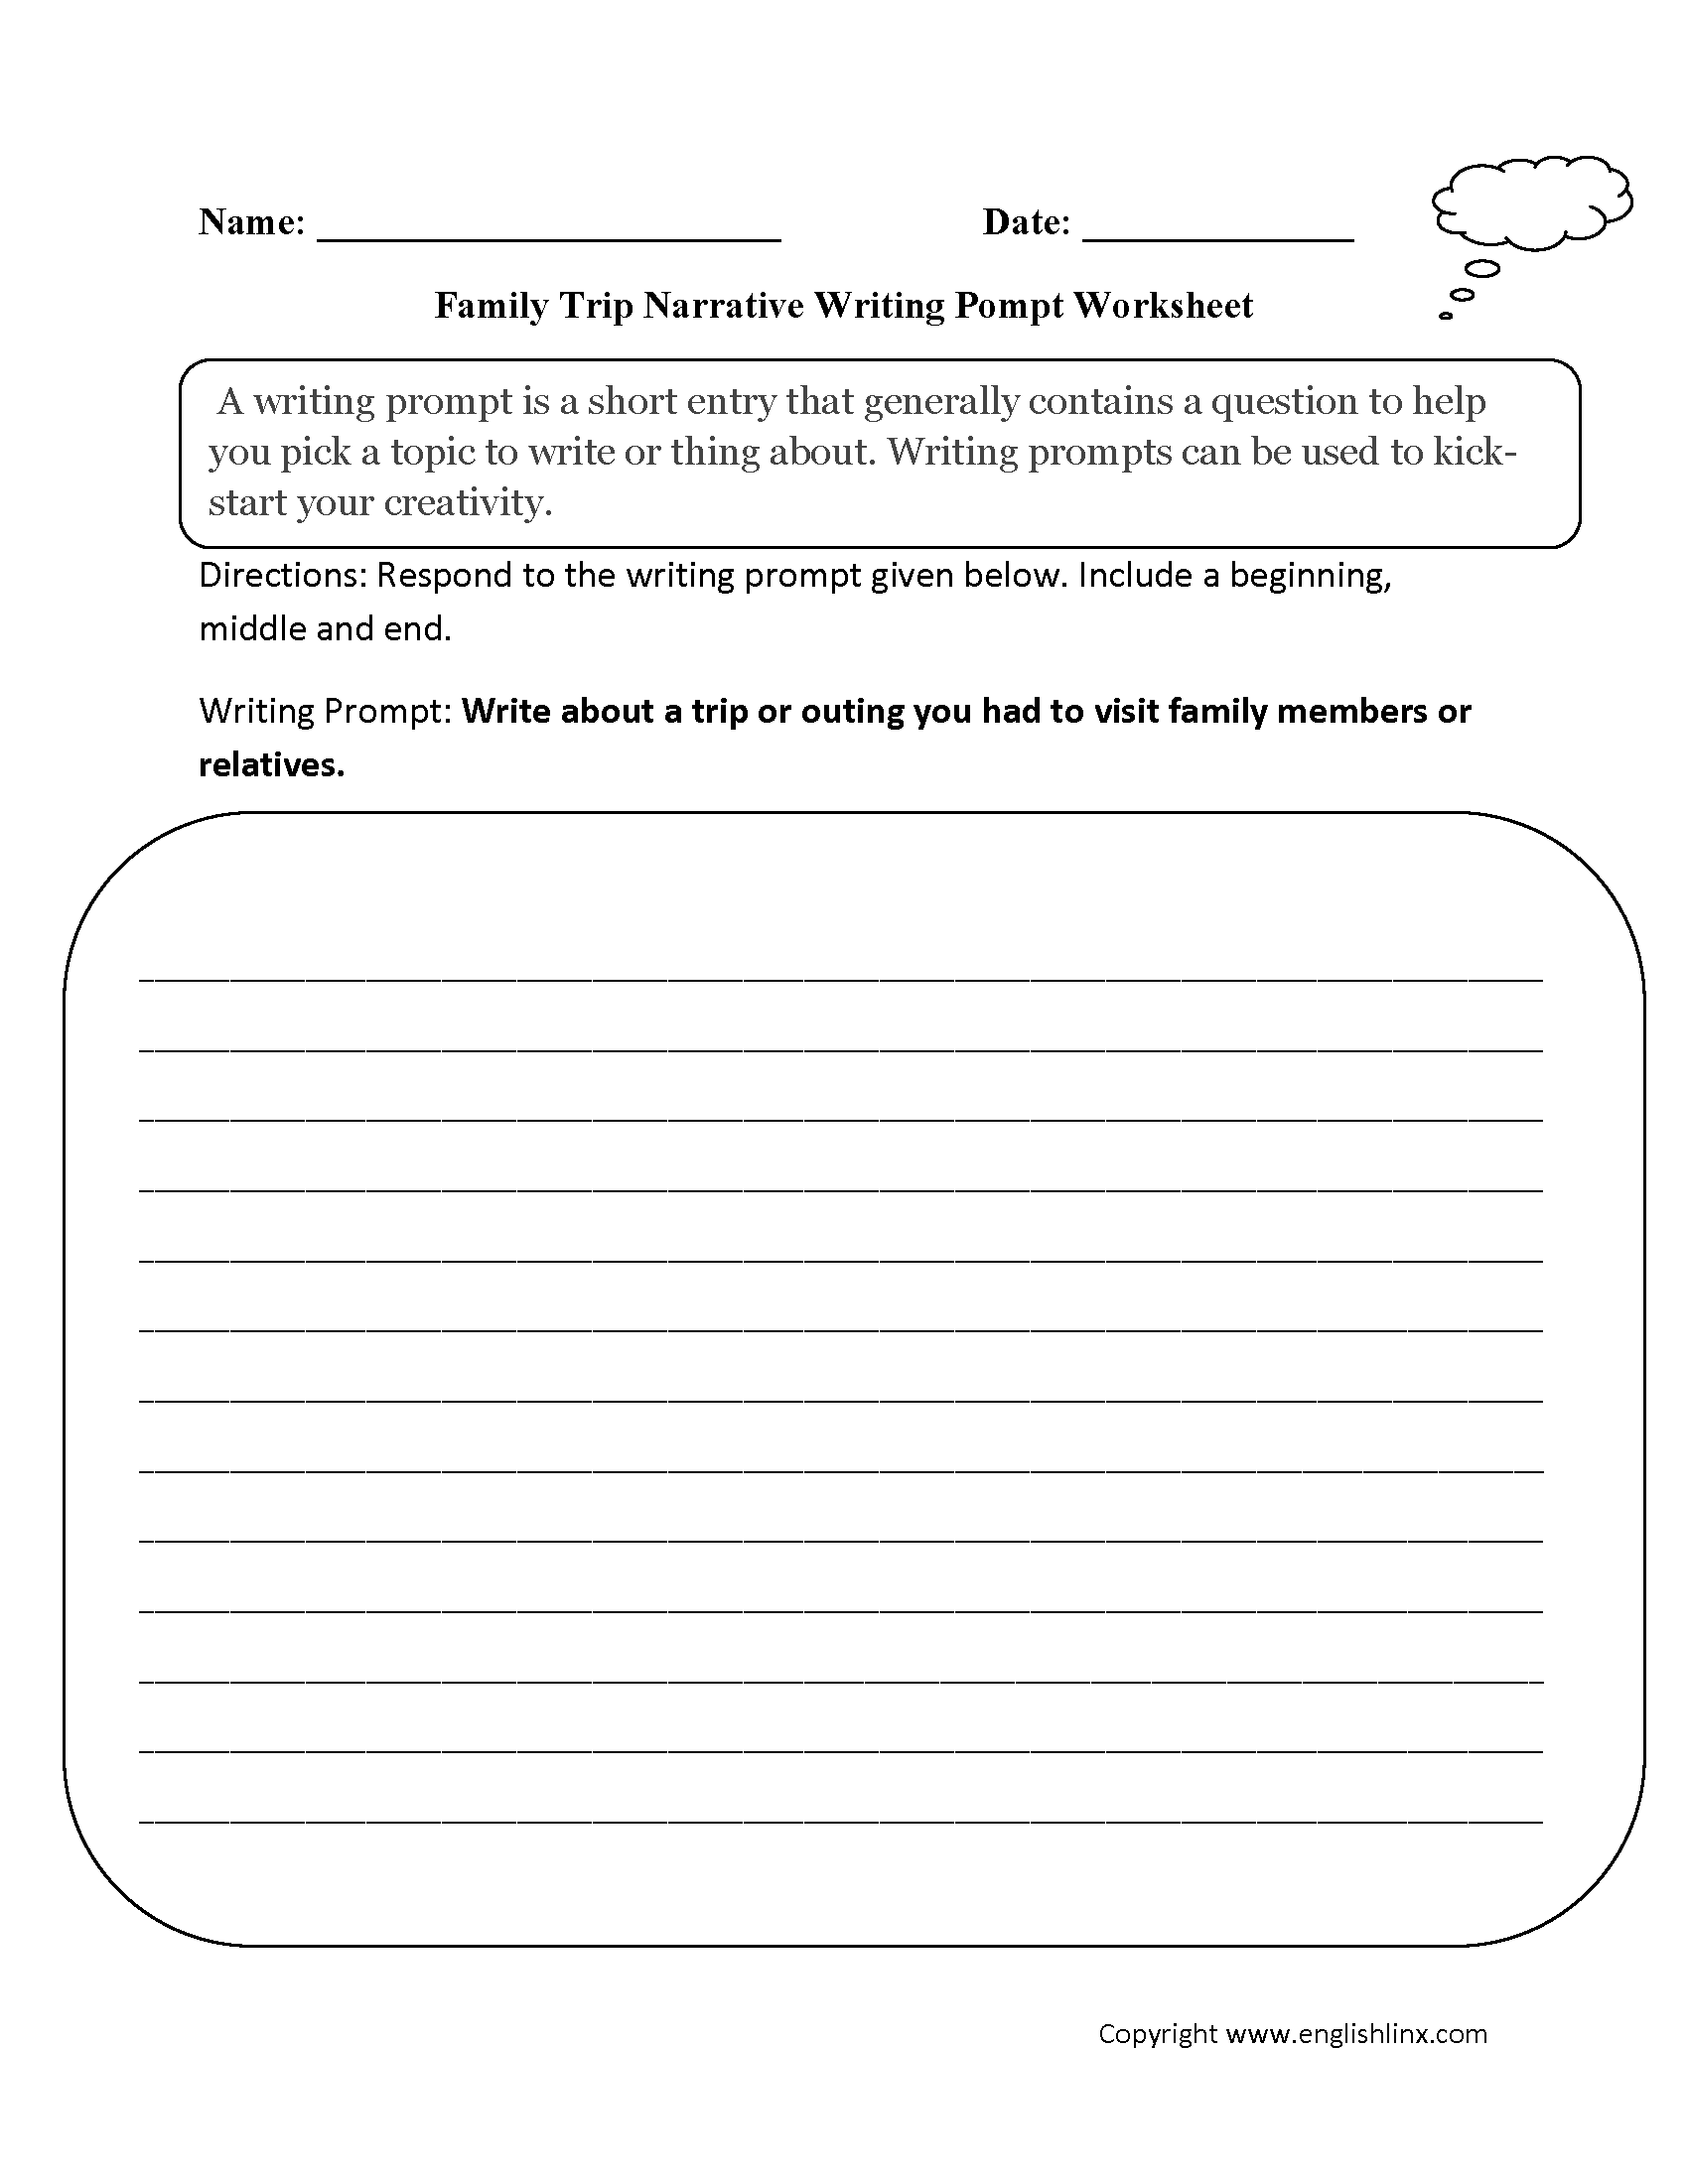 Family Narrative Writing Prompt Worksheet